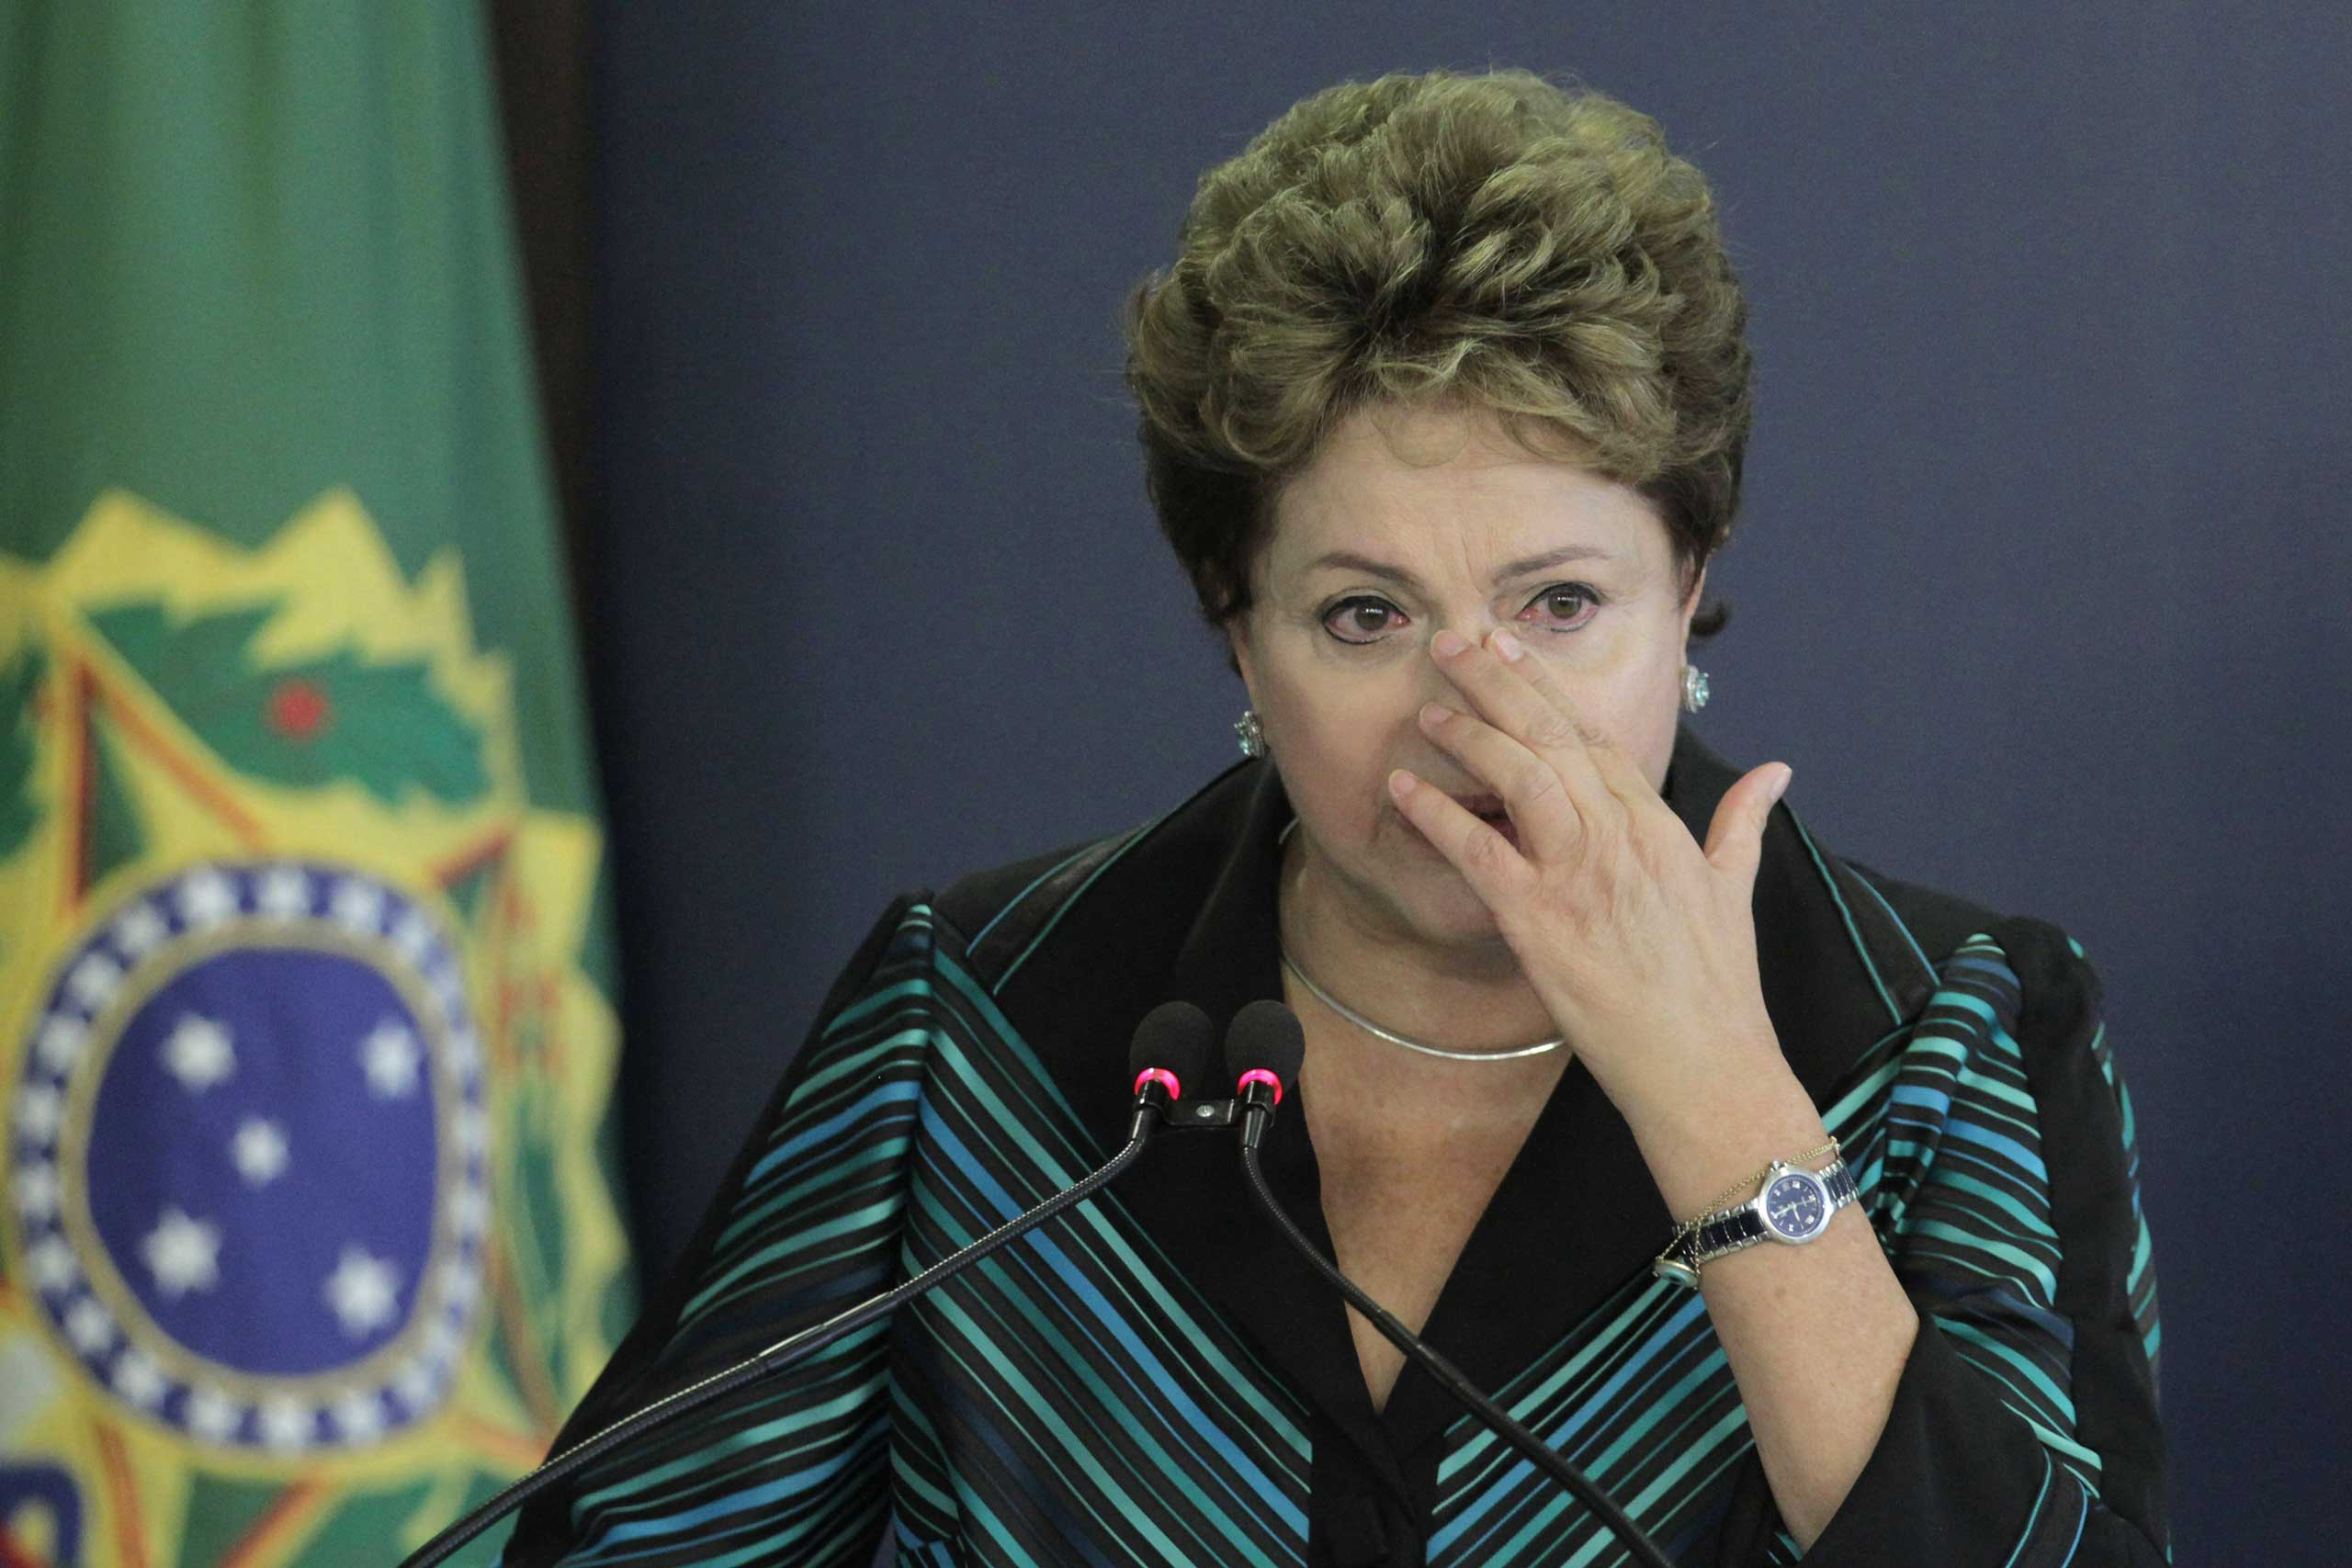 Brazil's President Dilma Rousseff cries during a speech at the launching ceremony of the National Truth Commission Report, at the Planalto Presidential Palace, in Brasilia, Brazil, Dec. 10, 2014.